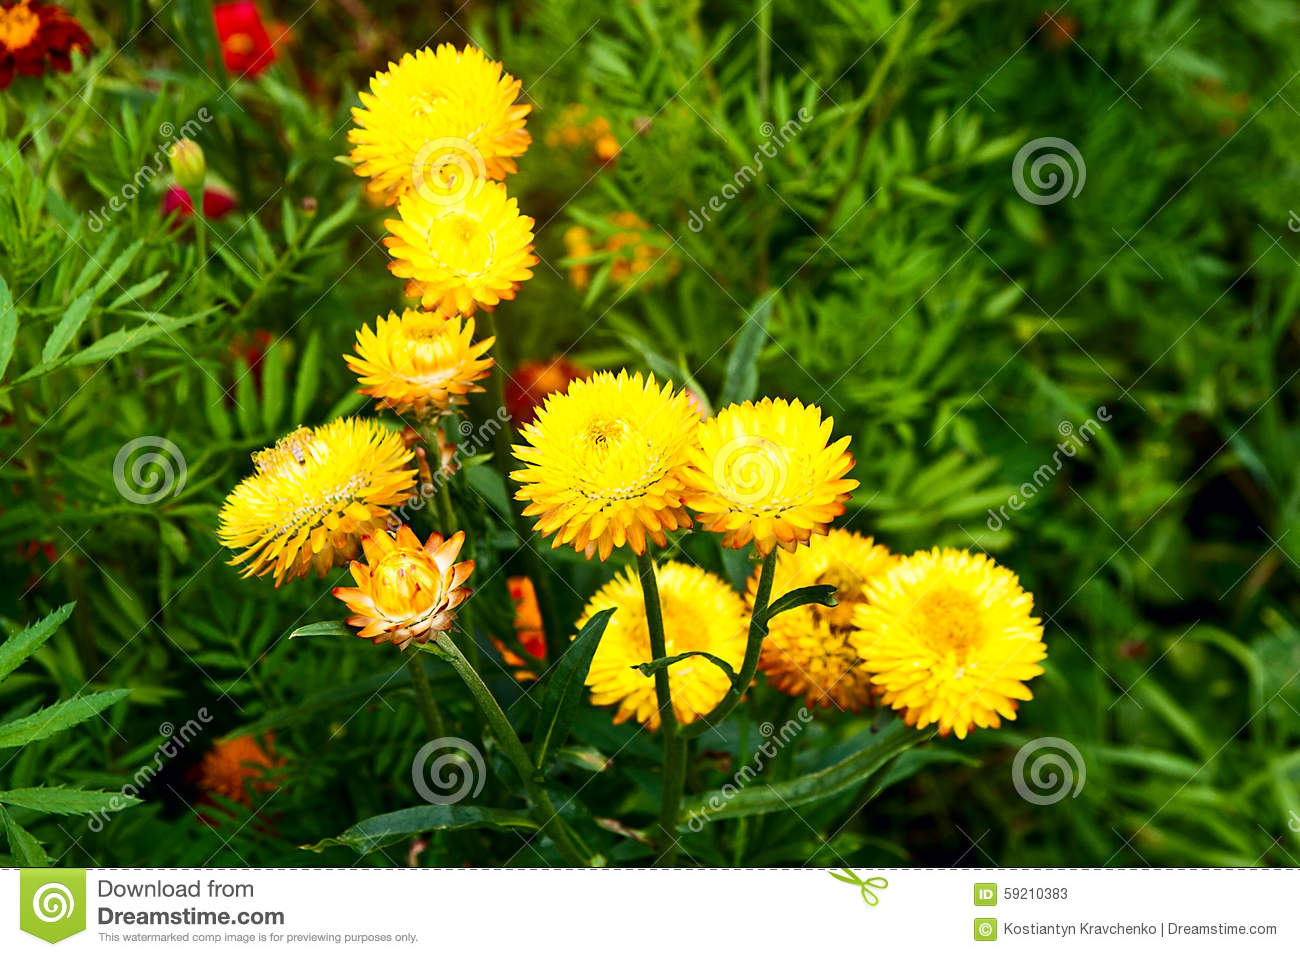 Garden flowers names - Excellent Yellow Helichrysum Paper Daisy Straw Flower Stock Photo Image With Garden Flower Names And Picture